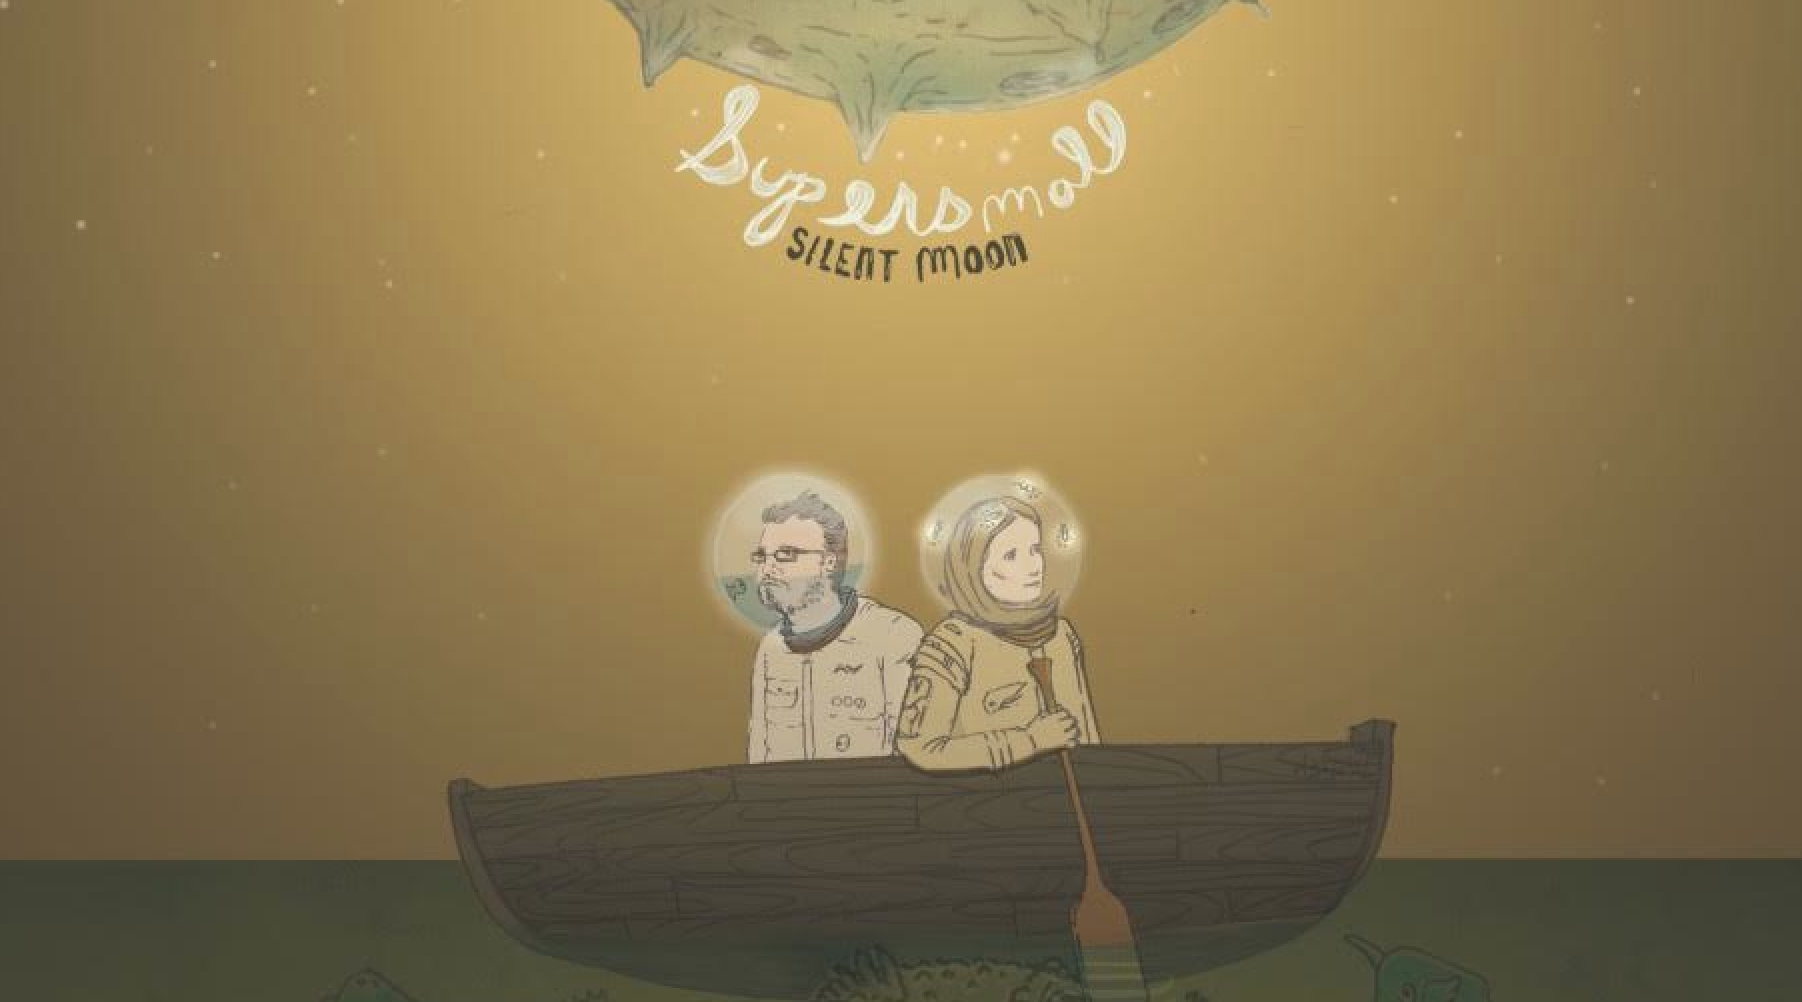 NYC folk-rock duo Supersmall premiere debut LP 'Silent Moon'